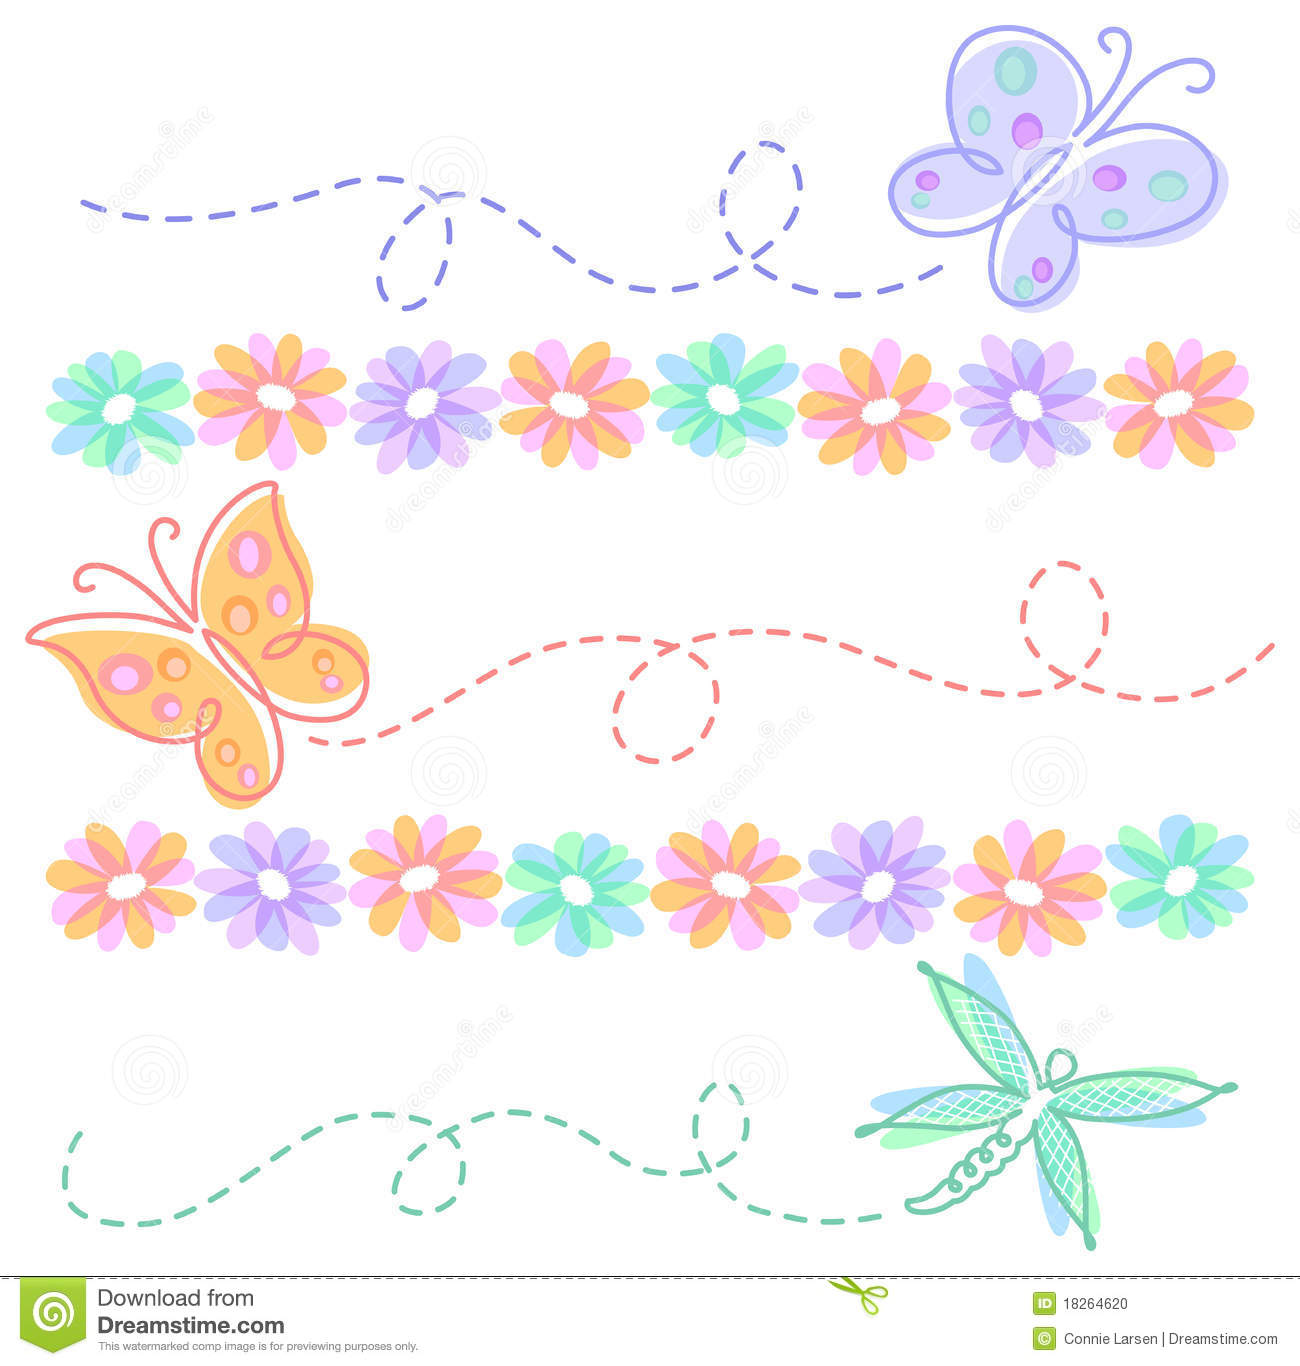 Clipart butterflies and flowers png freeuse Clipart Flowers And Butterflies Border | Clipart Panda - Free ... png freeuse